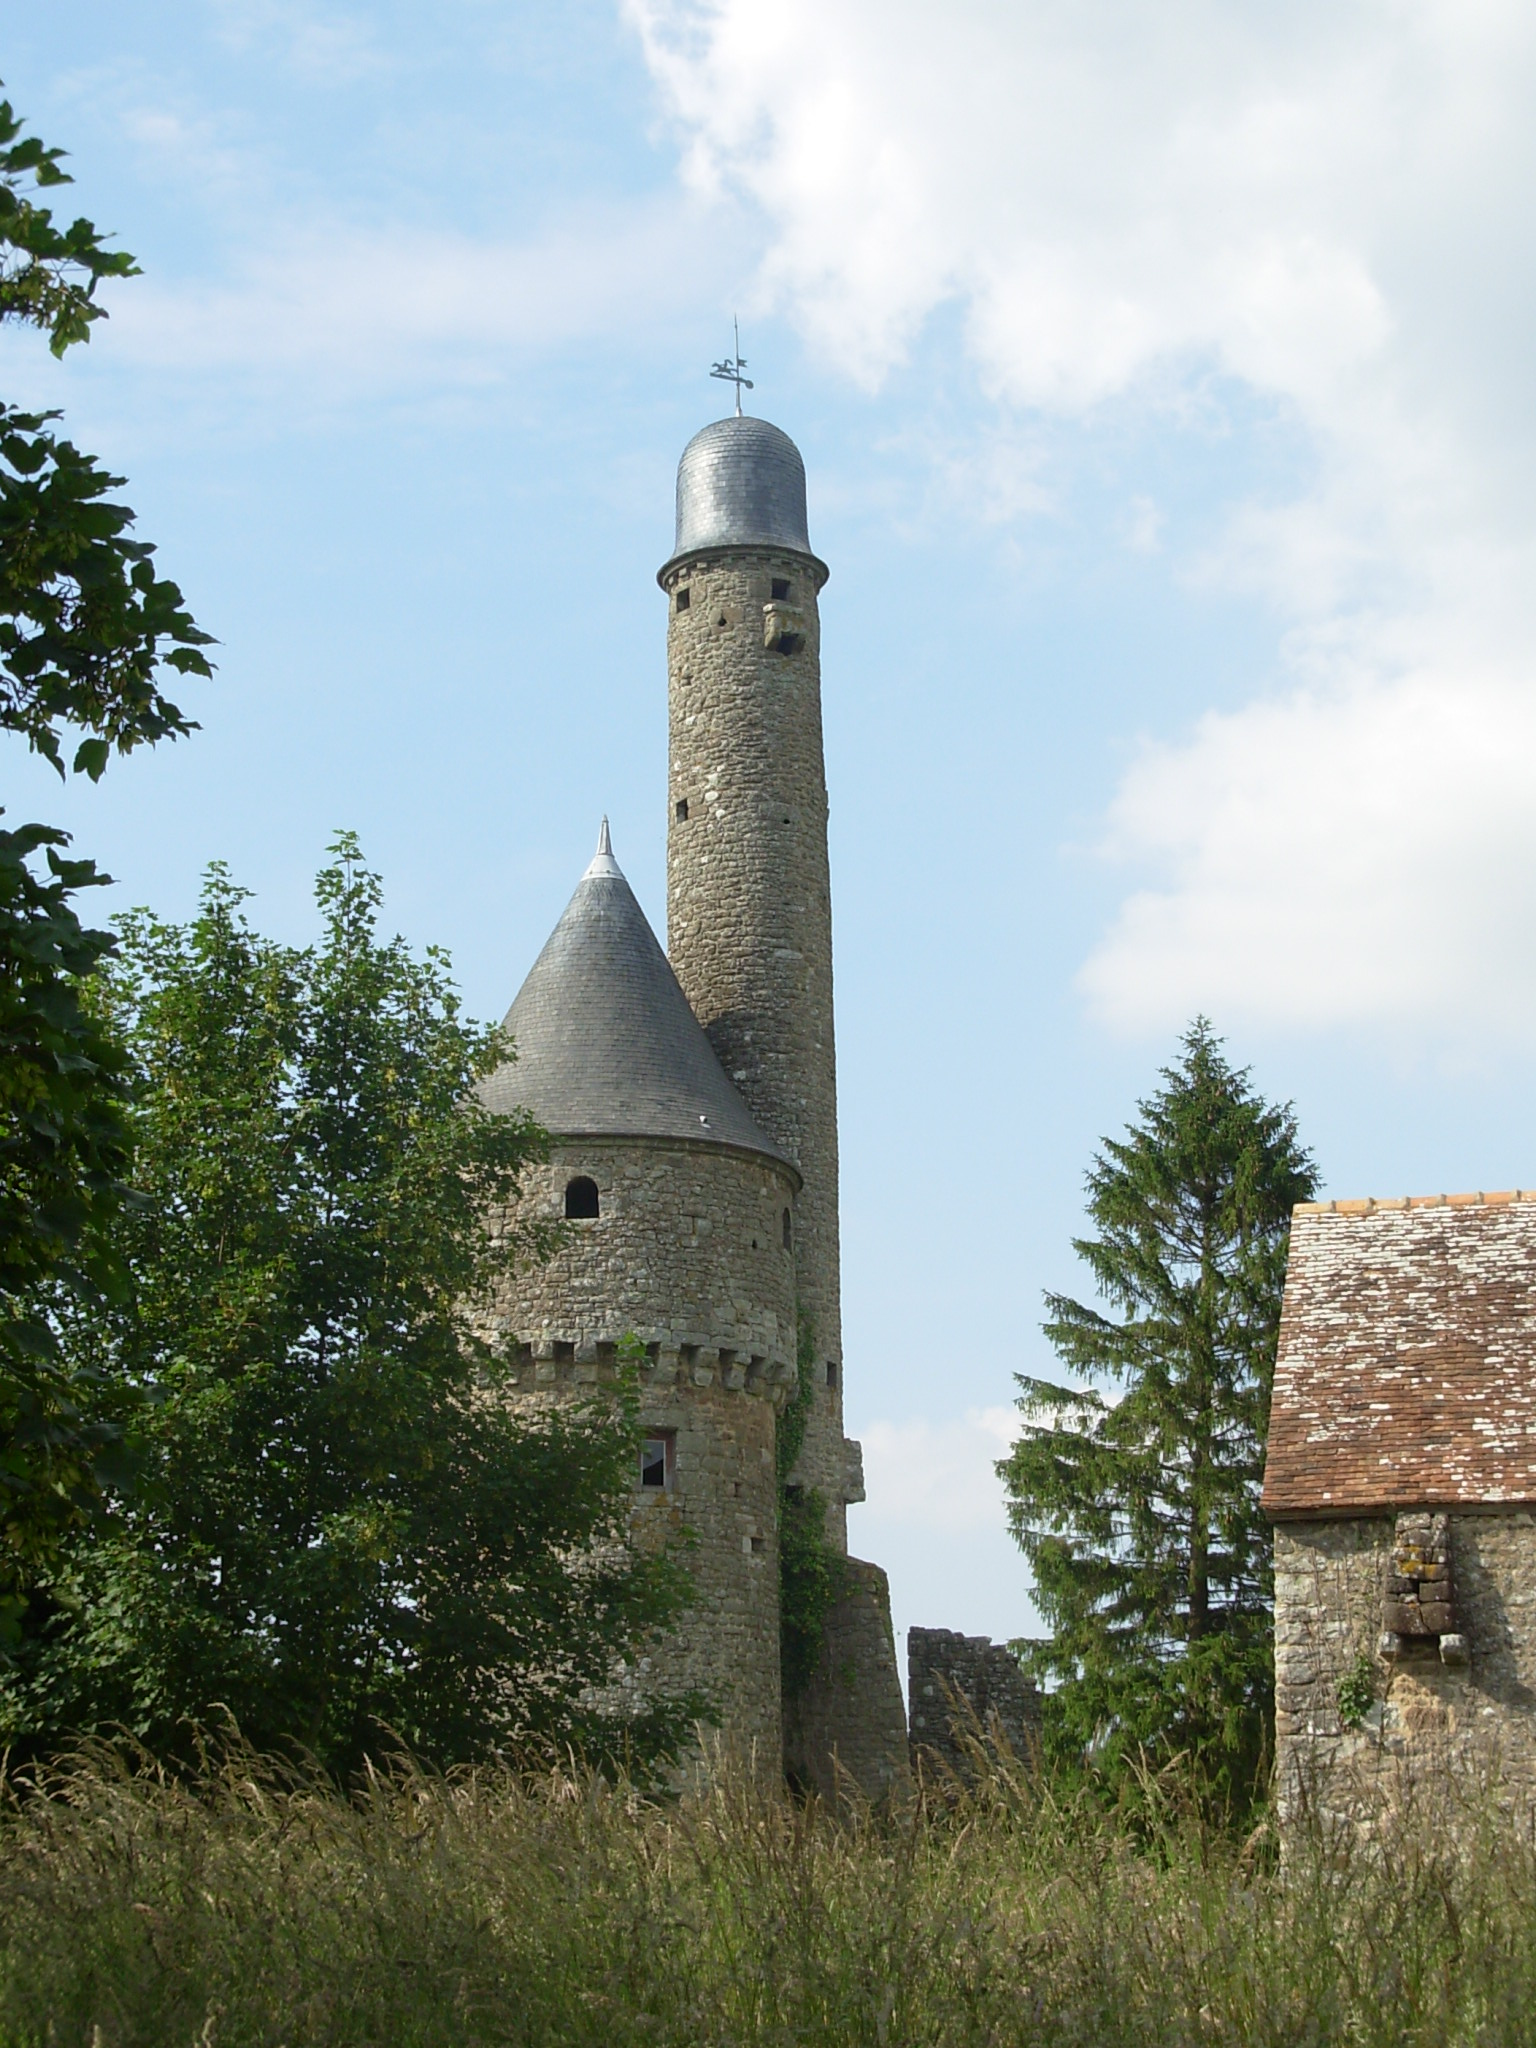 Tour de Bonvouloir